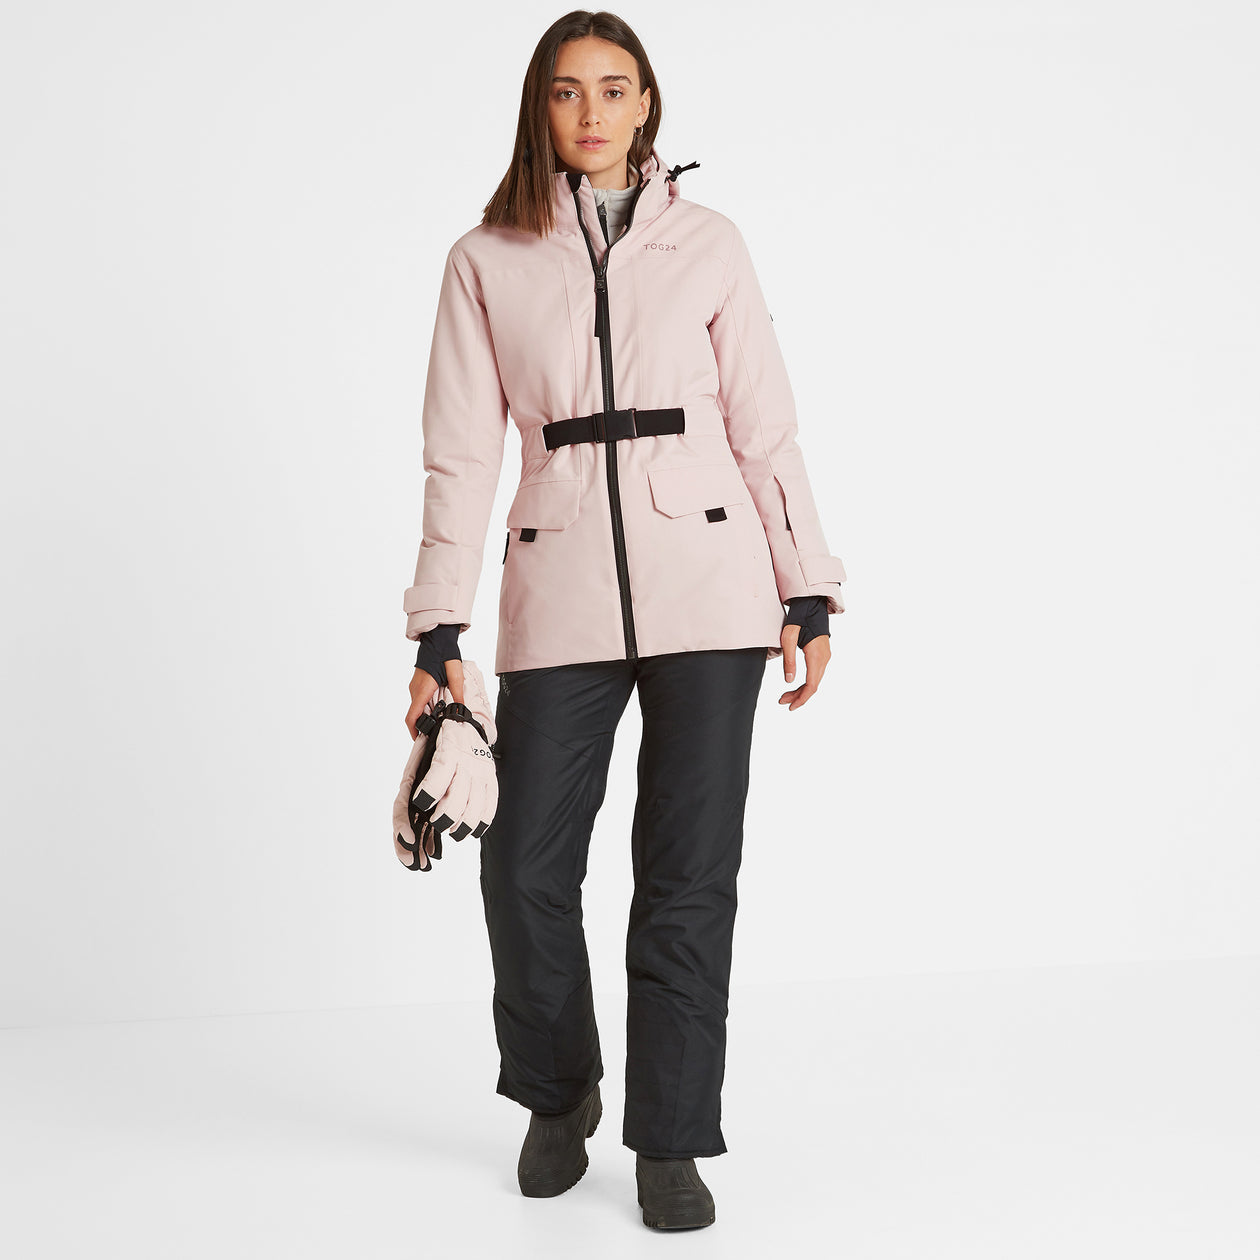 Helmsley Womens Waterproof Ski Jacket - Rose Pink image 4